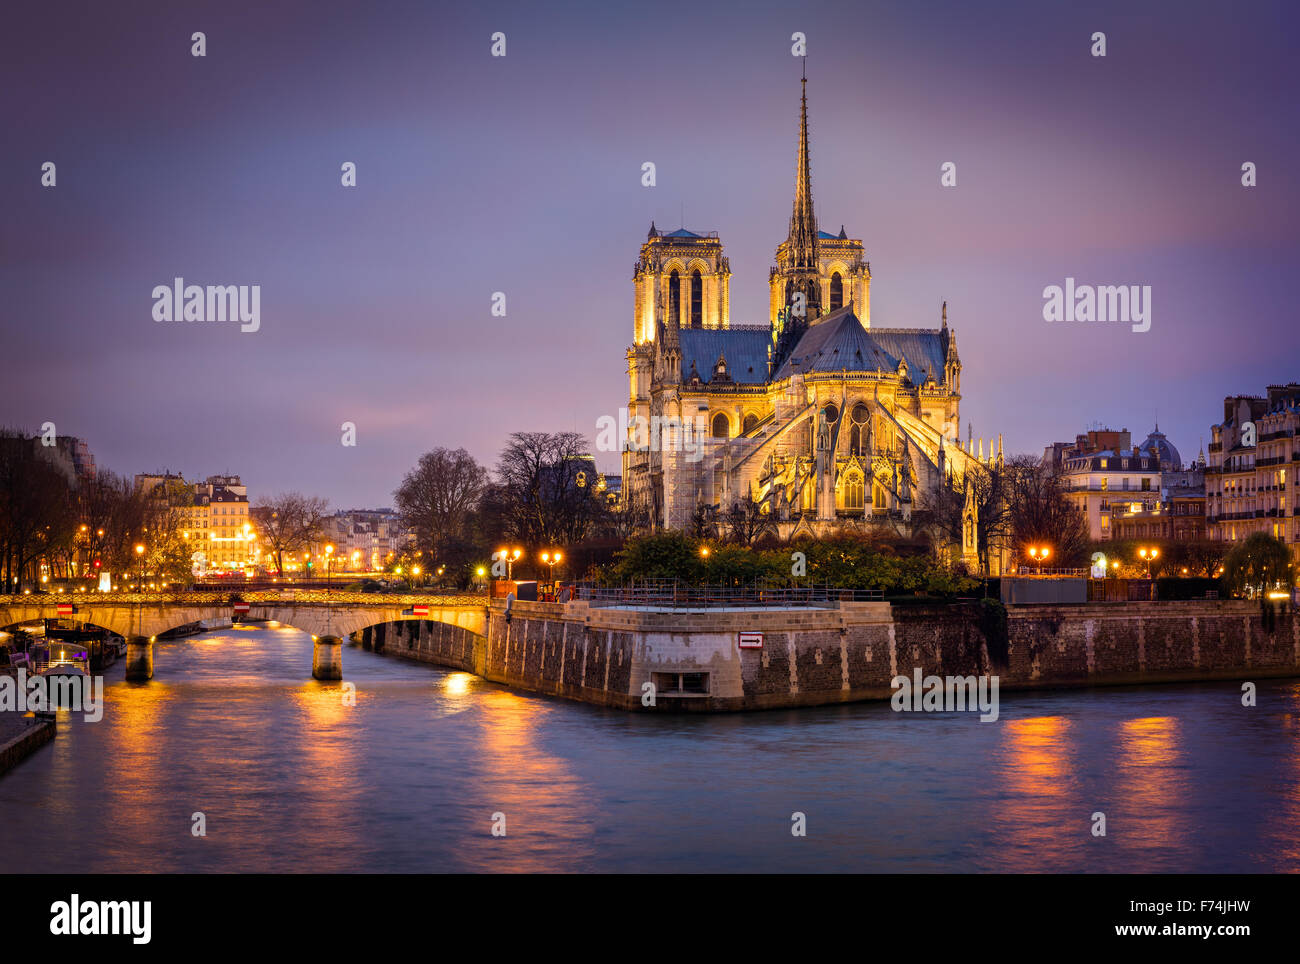 Illuminated Cathedral of Notre Dame on Ile de La Cite with the Archbishop's Bridge and Seine River, Paris, France. Stock Photo